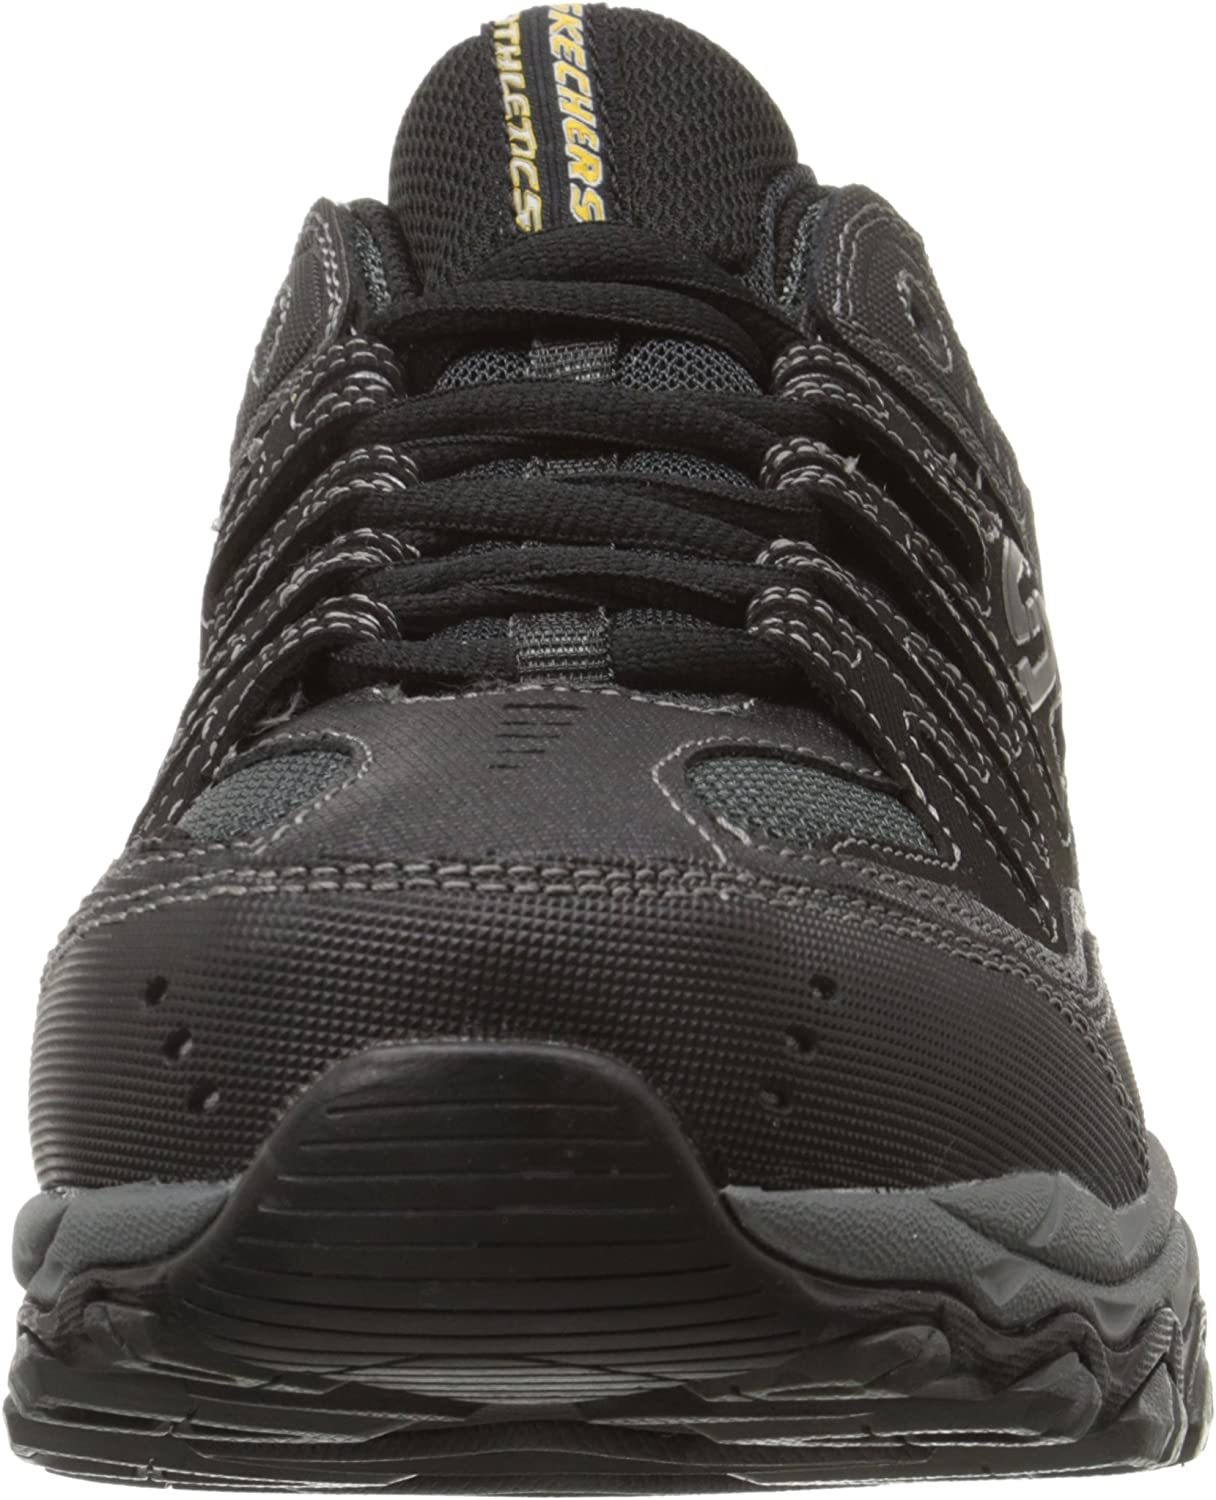 Recitar Pasteles piel  Amazon.com | Skechers Men's Afterburn Memory-Foam Lace-up Sneaker | Athletic